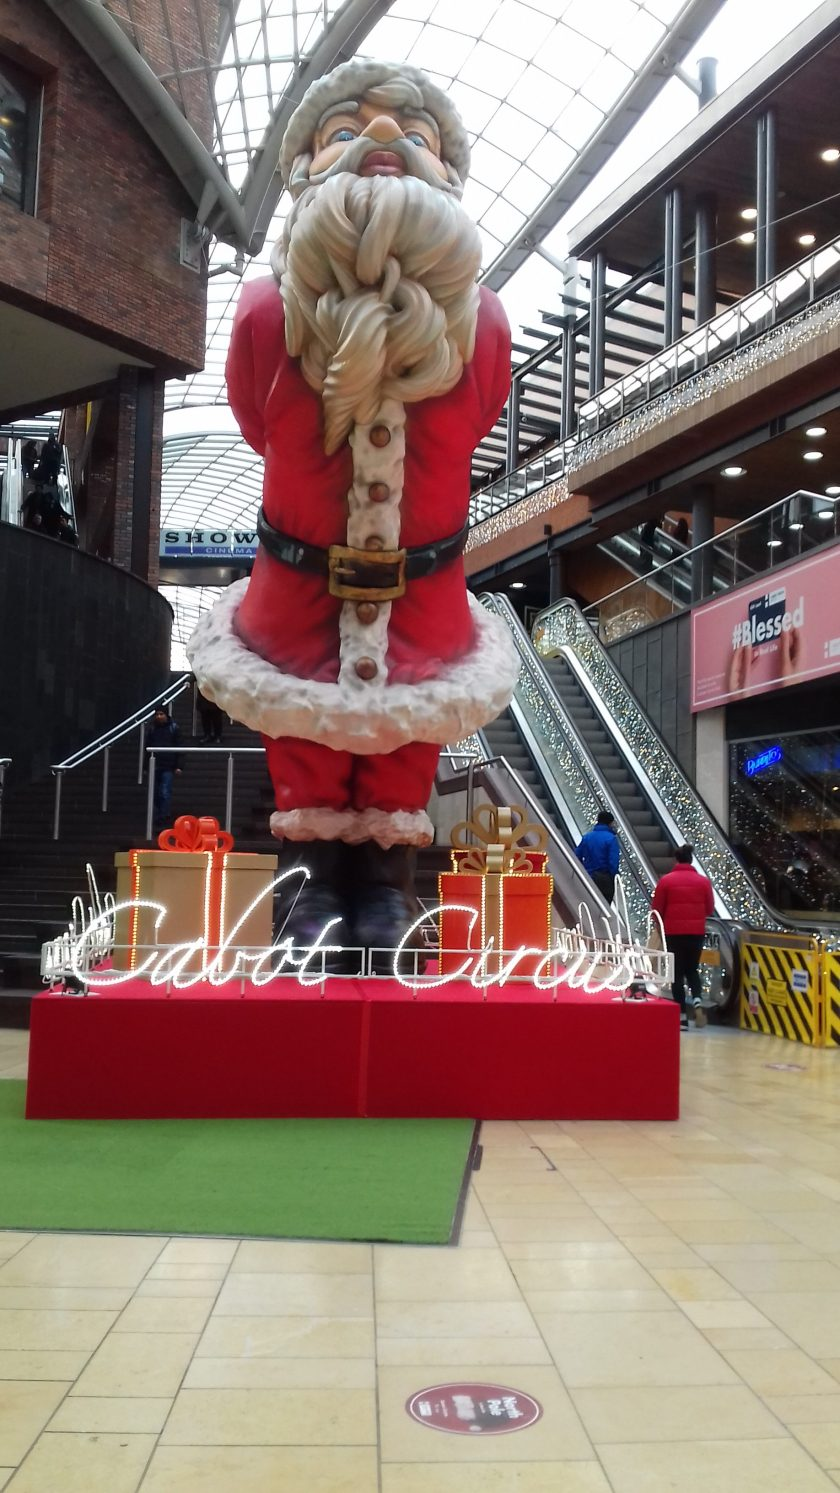 Farther Christmas in Cabot circus #Bristol christmas